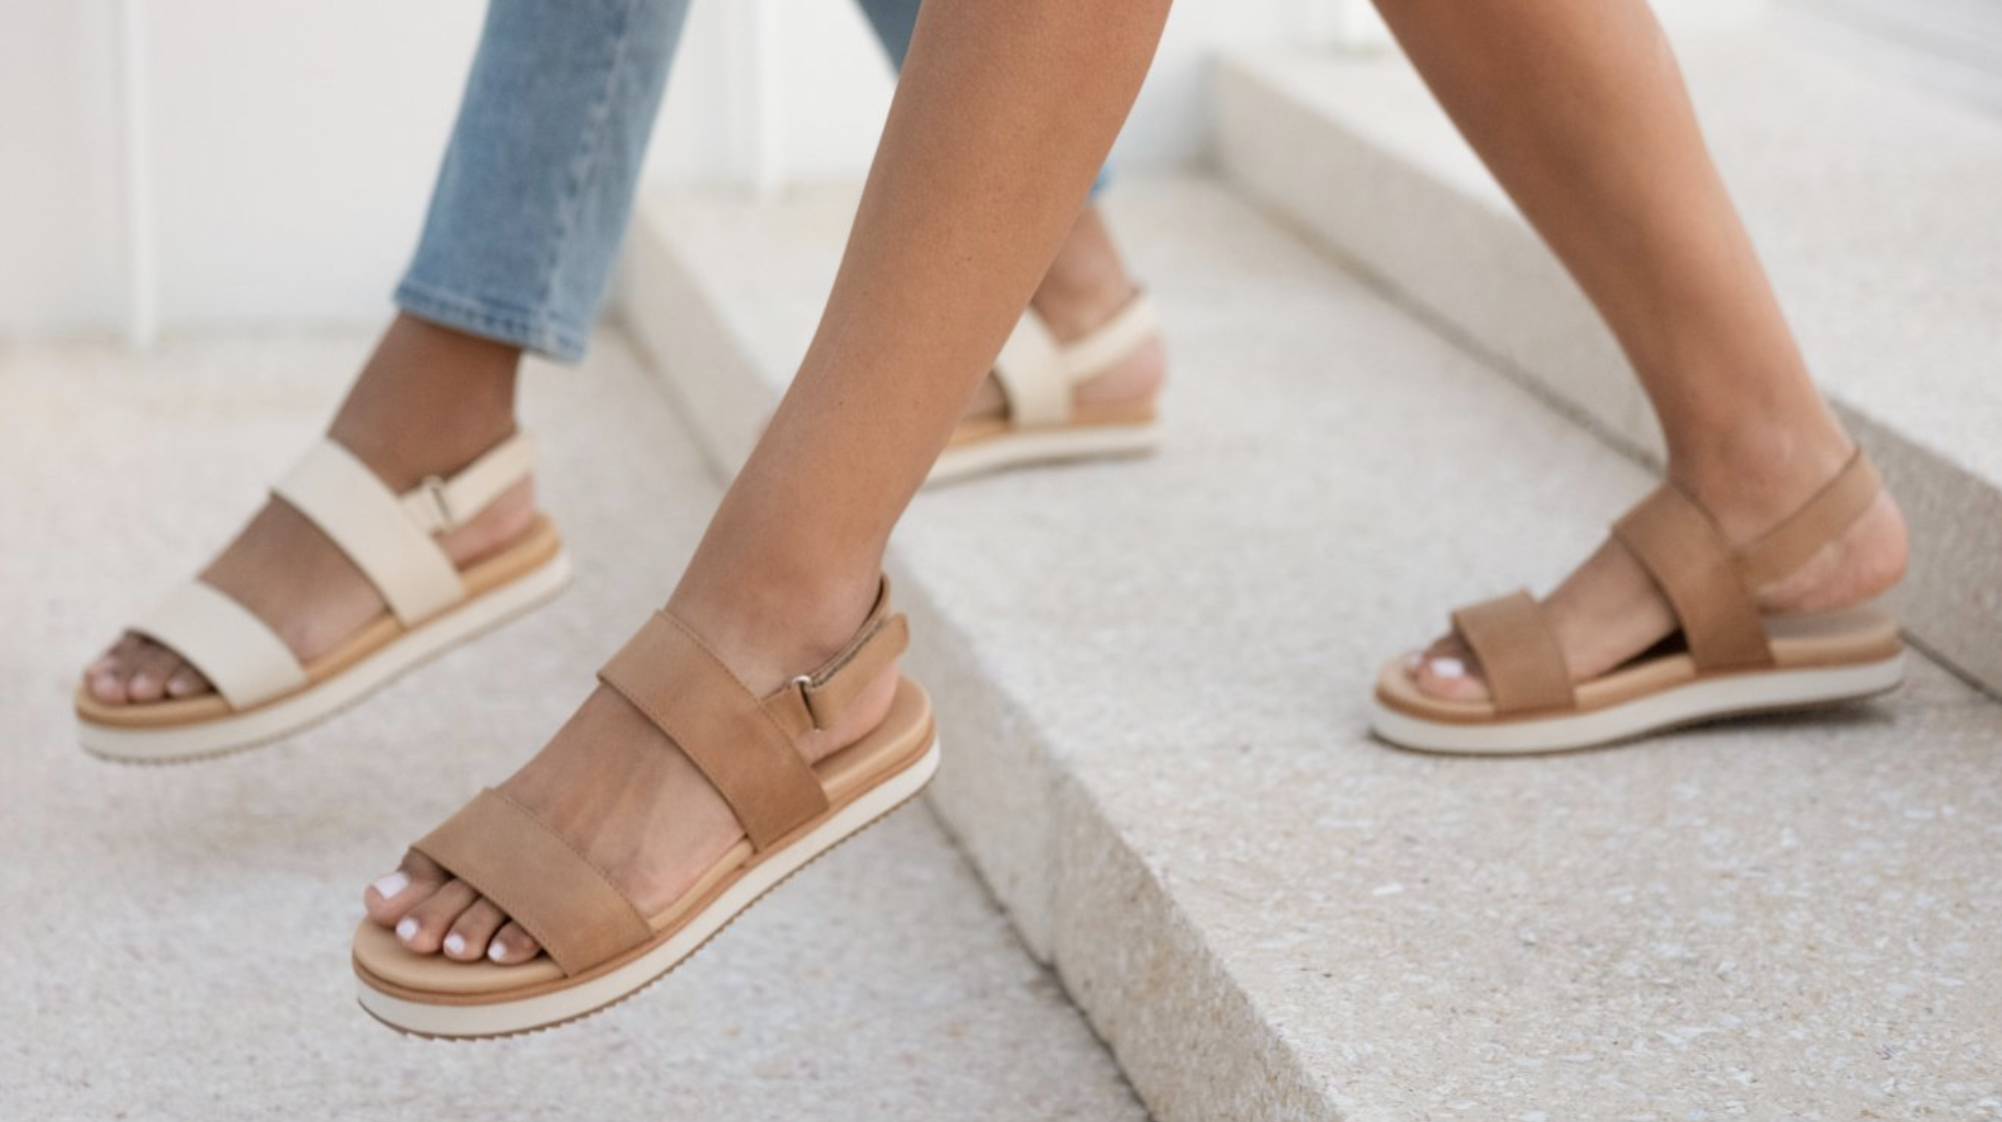 models wearing brown and white sandals